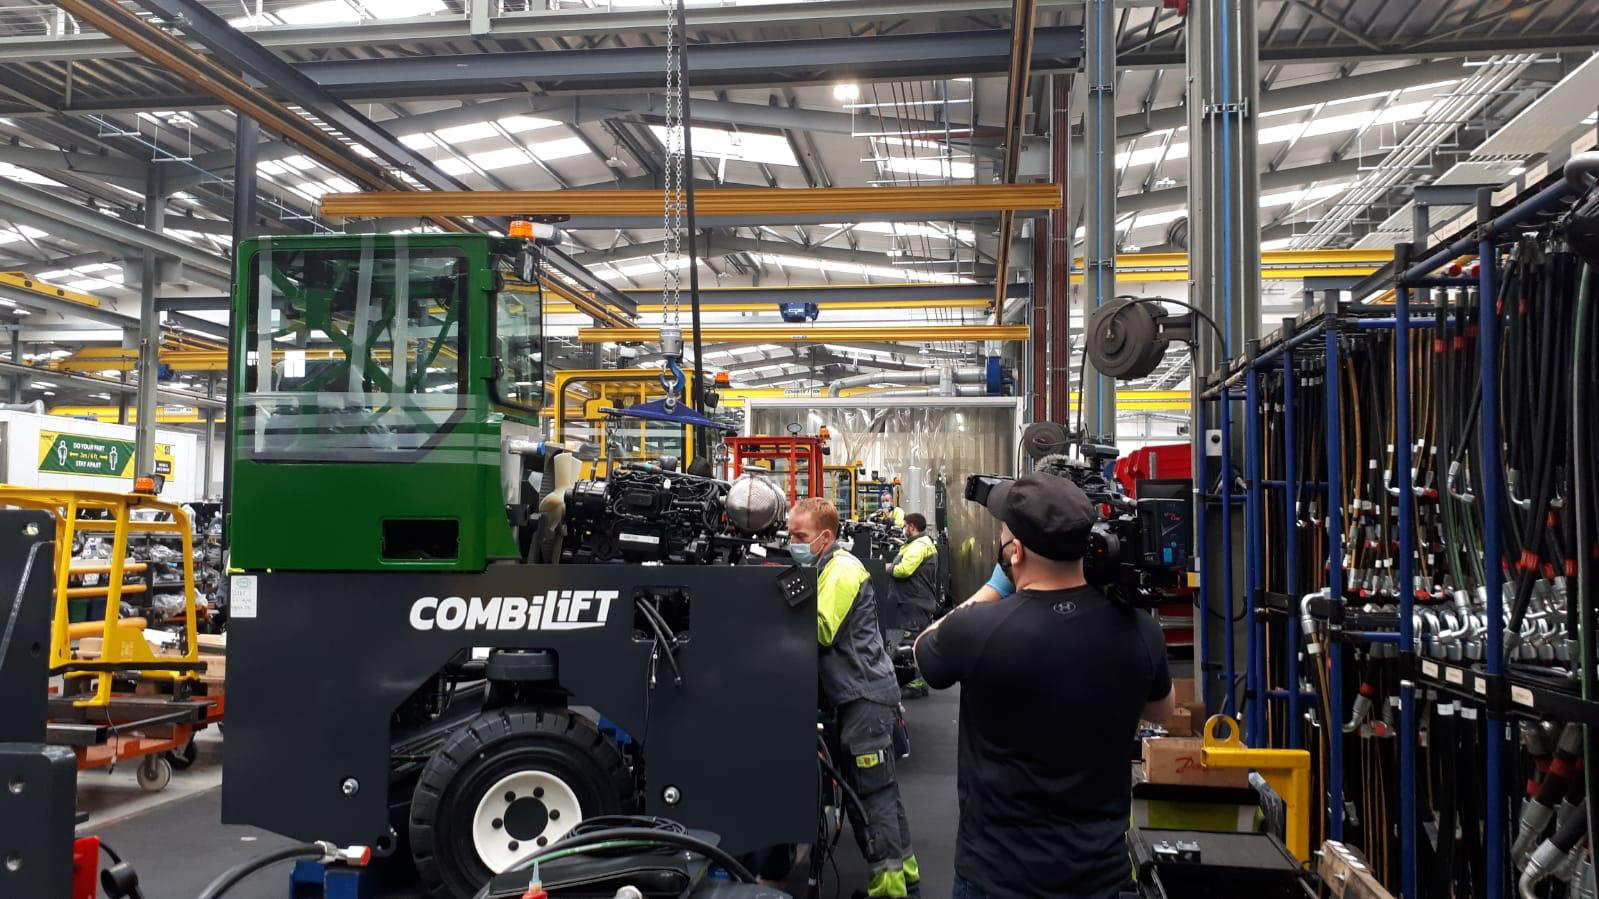 Combilift are Open For Irish TV Show